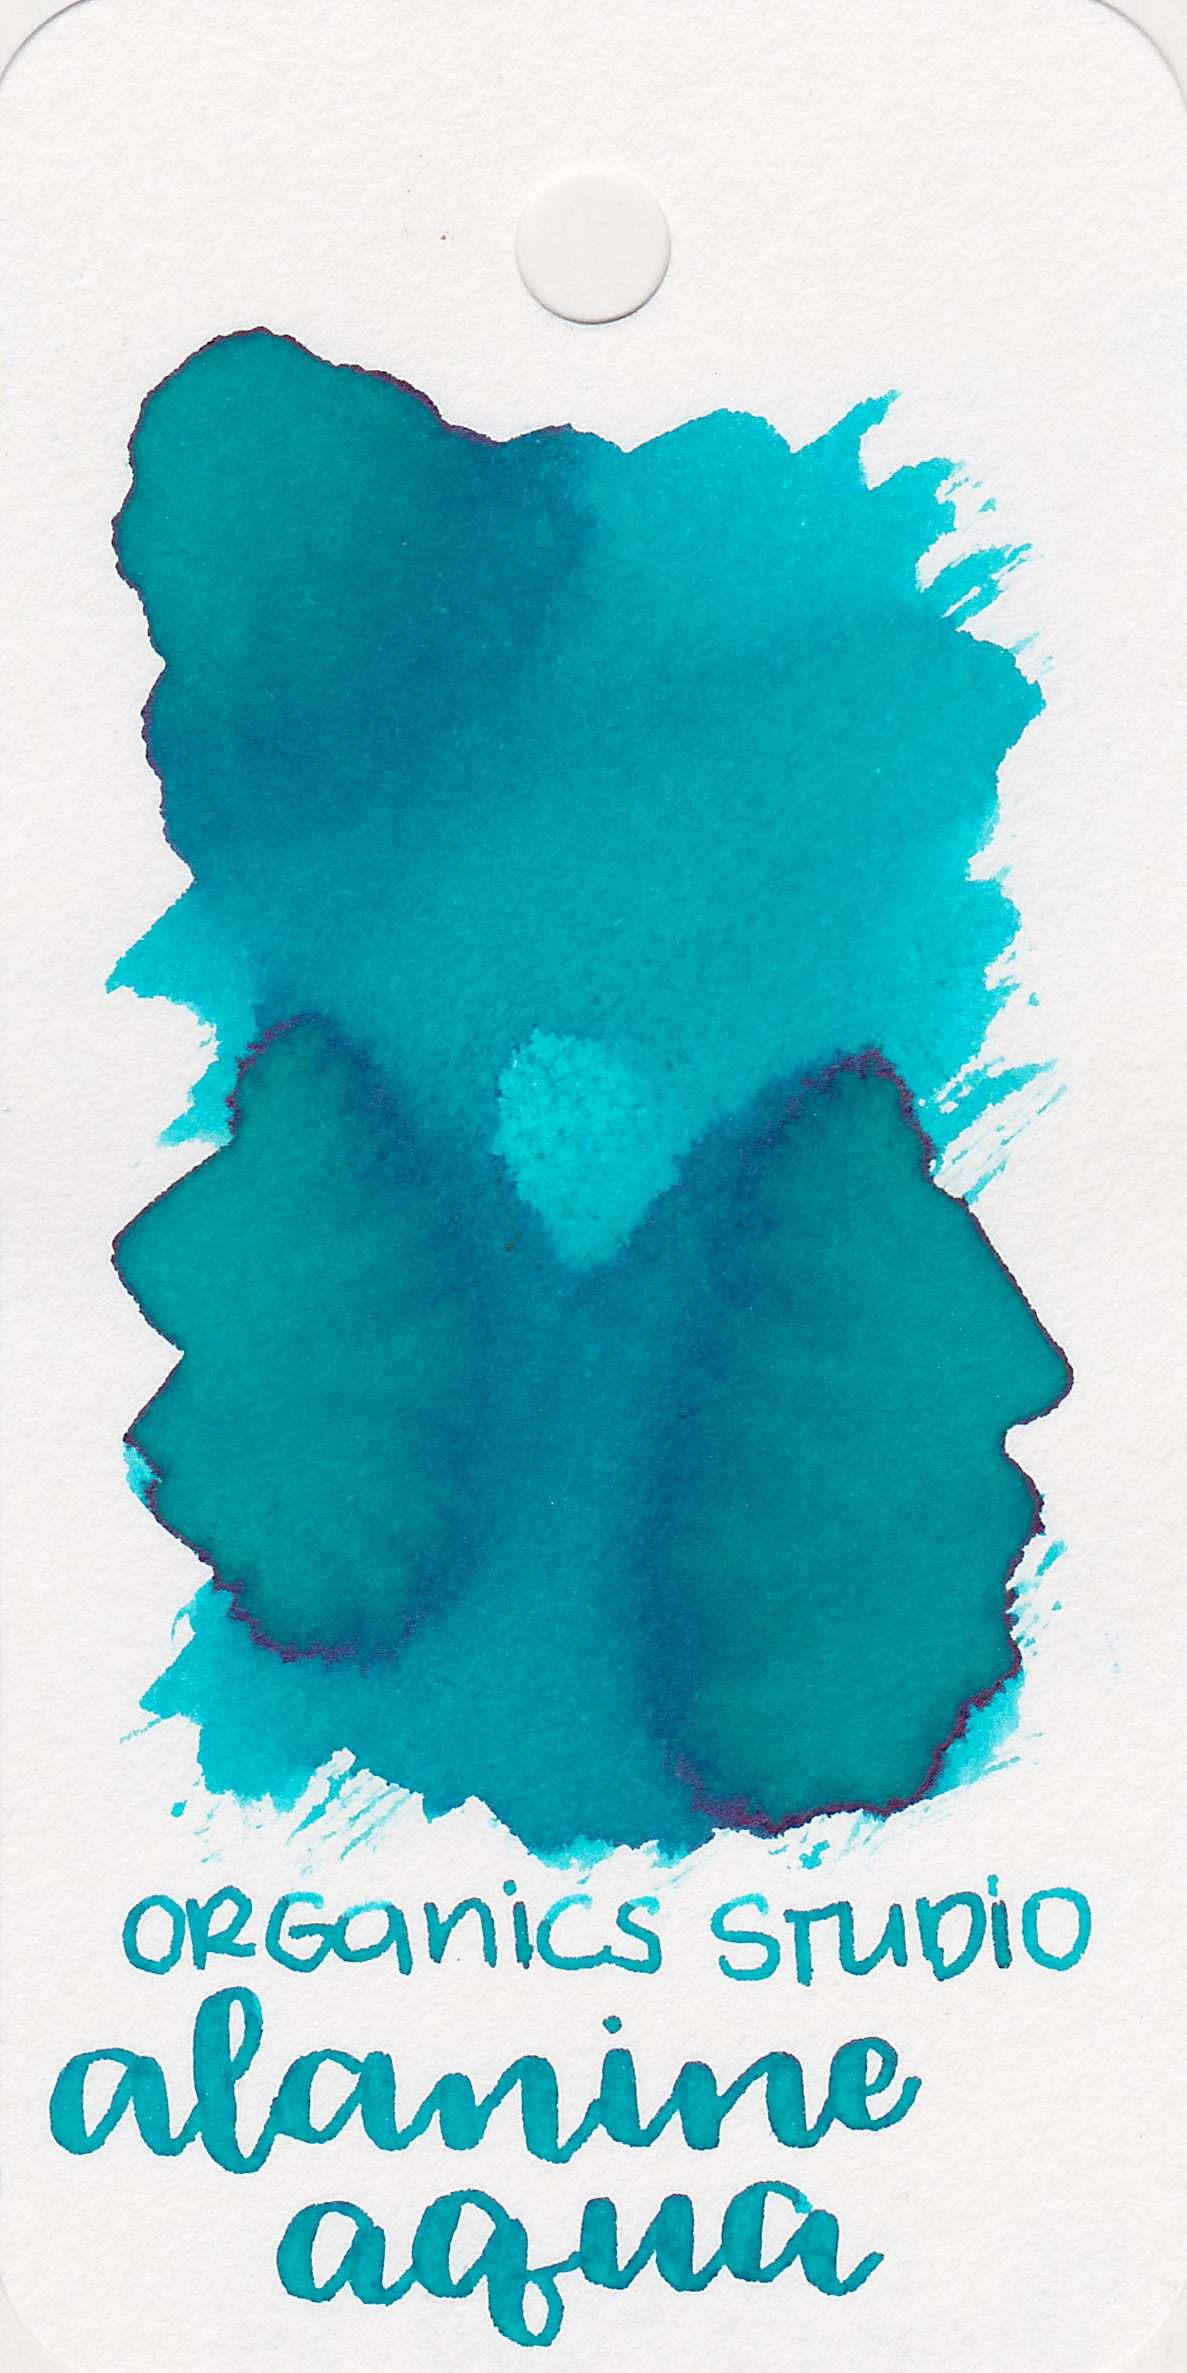 The color: - Alanine Aqua is a turquoise blue, not quite teal, but not quite just blue either. This swab only showed a tiny bit of silver shimmer.